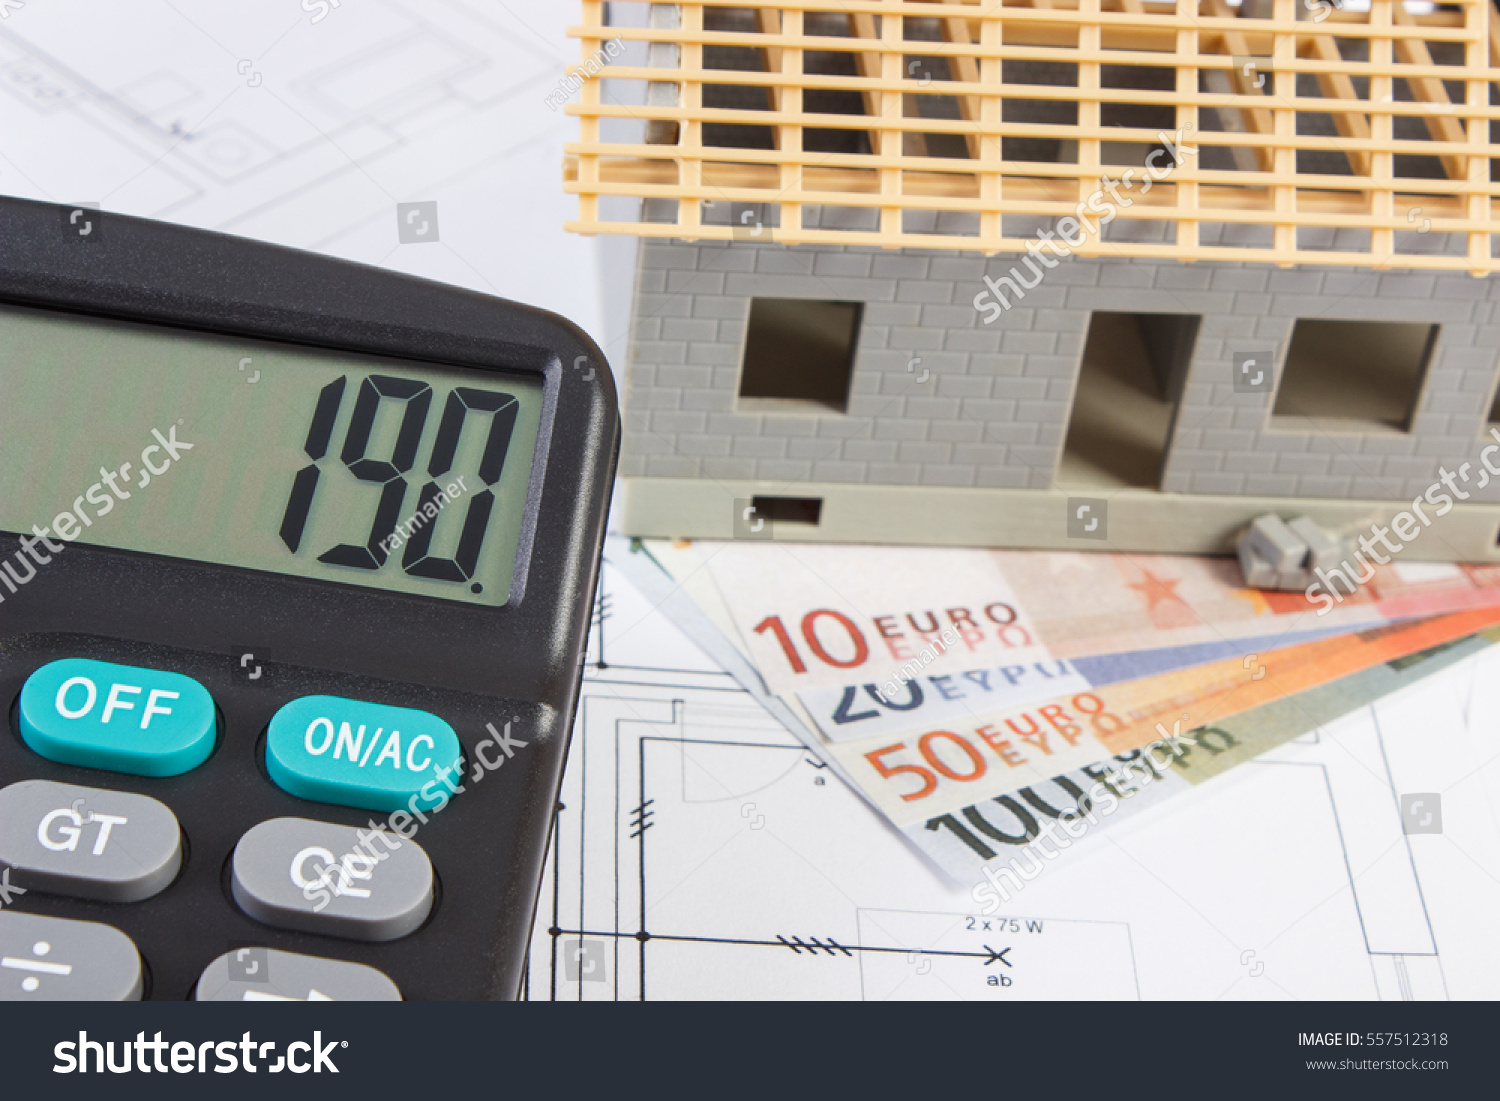 Good House Construction Calculator #9: Small House Under Construction, Calculator And Currencies Euro On  Electrical Drawings For Project, Concept